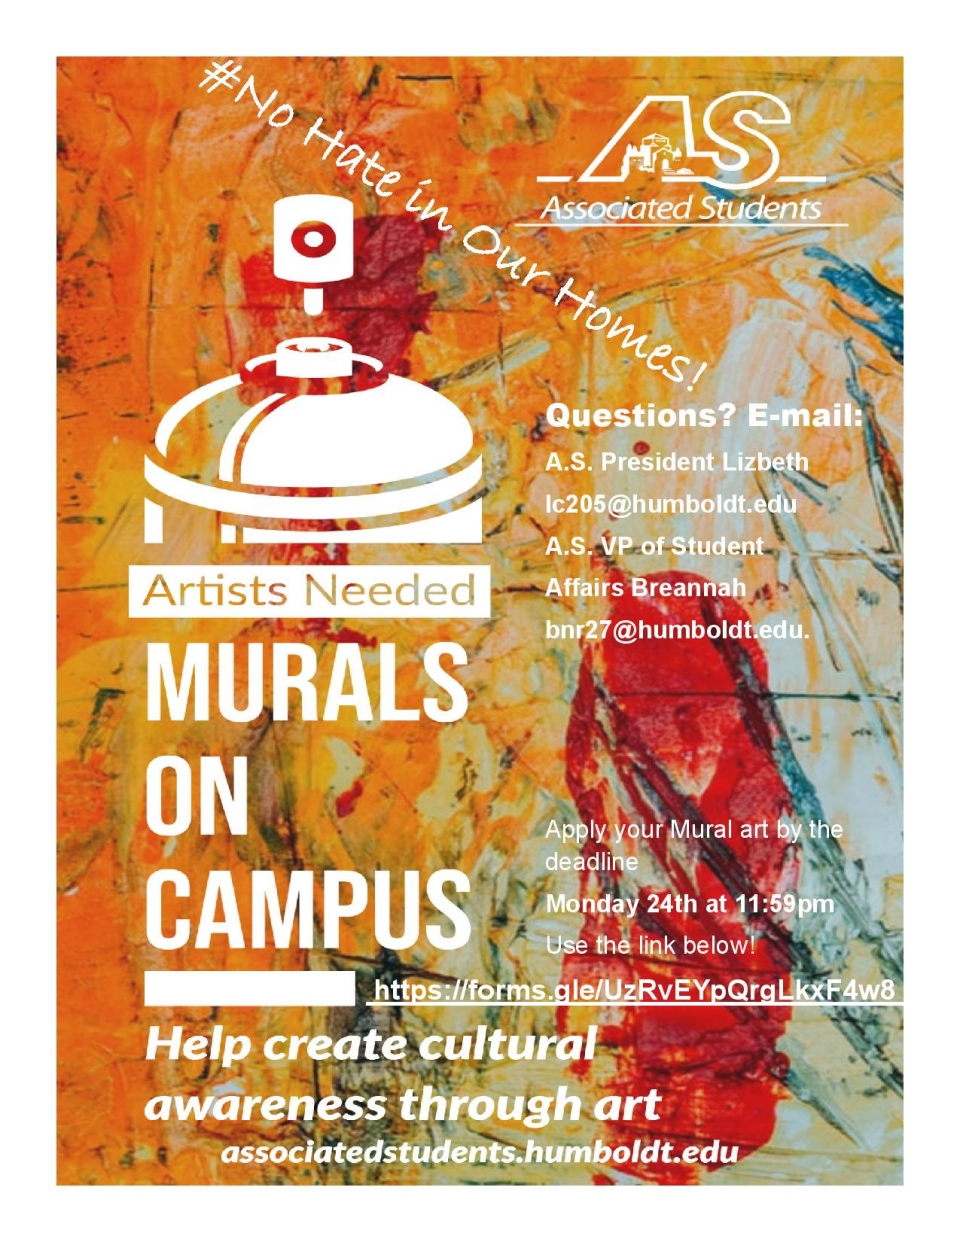 The flyer reads: #NoHateInOurHomes! Questions? Email: A.S. President, Lizbeth at lc205@humboldt.edu or A.S. Student Affairs Vice President at bnr@humboldt.edu Send your mural art by the deadline on Monday, February 24th Help create cultural awareness